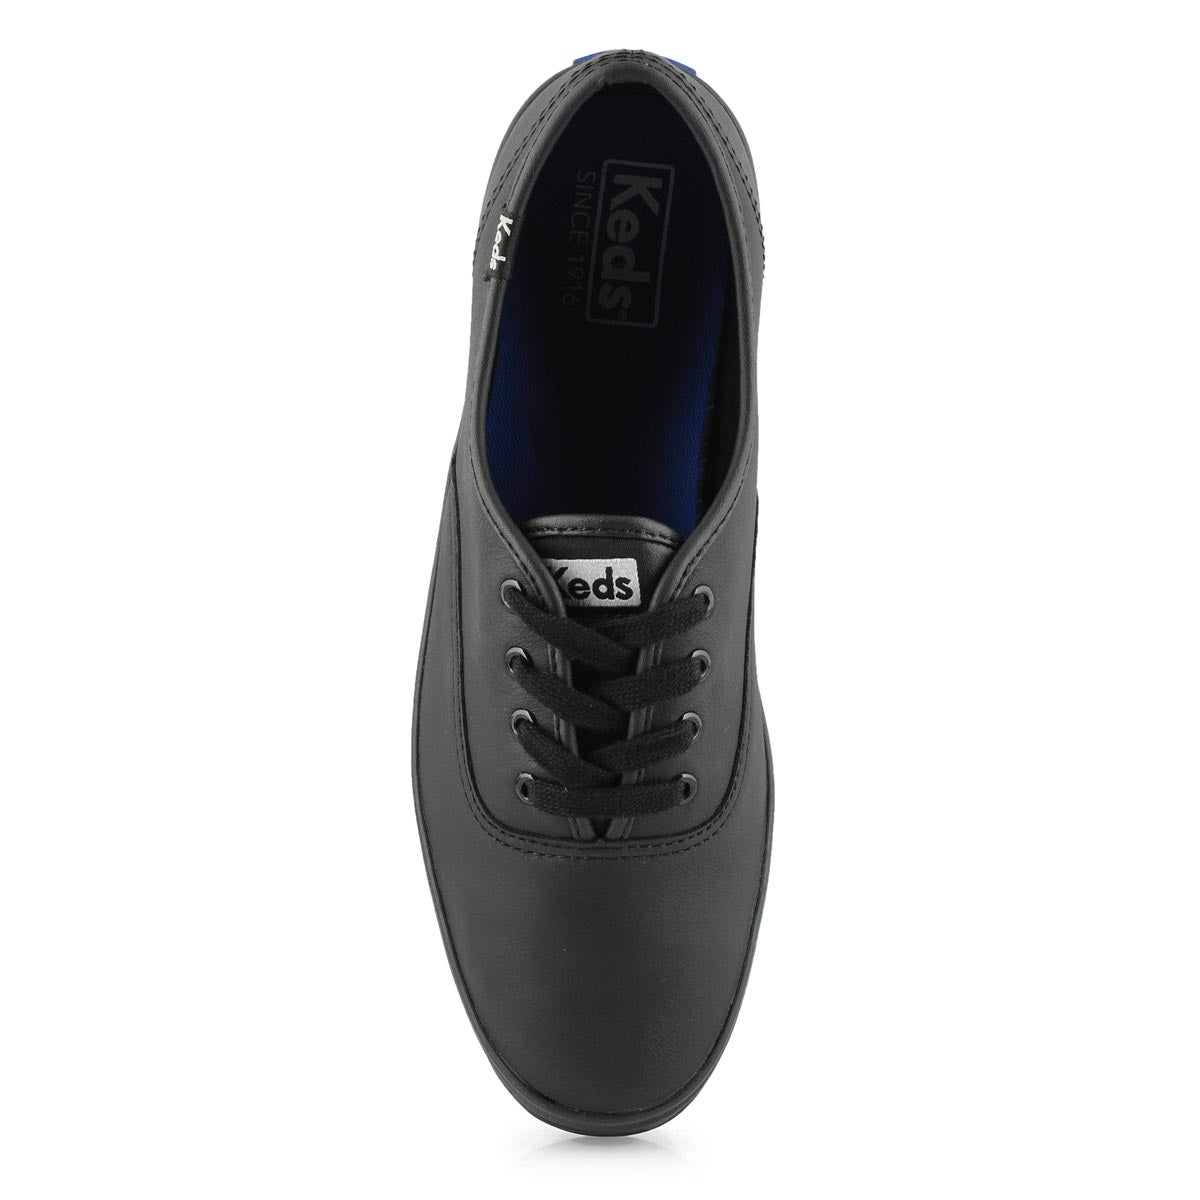 champion keds oxford leather shoes with heels